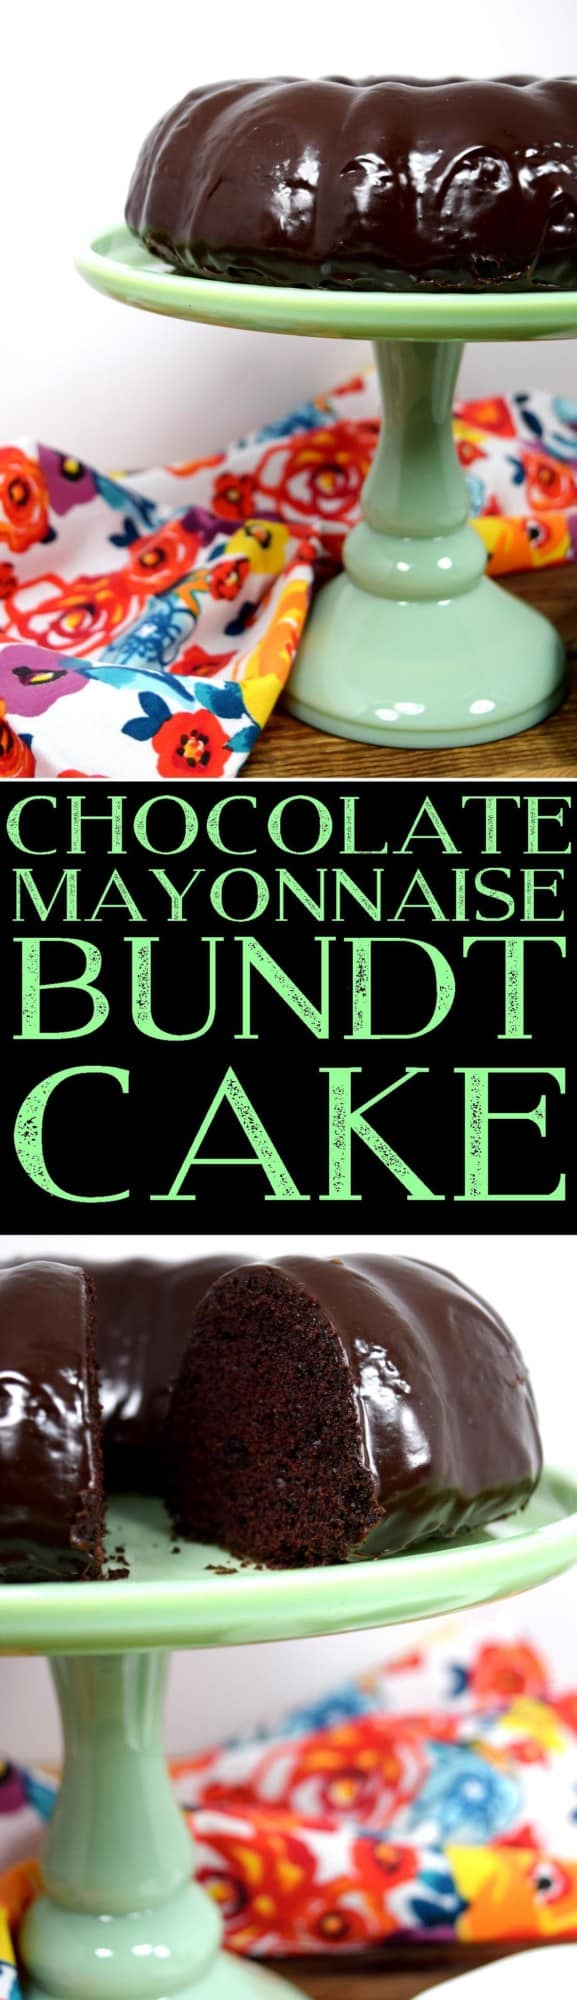 Chocolate Mayonnaise Bundt Cake